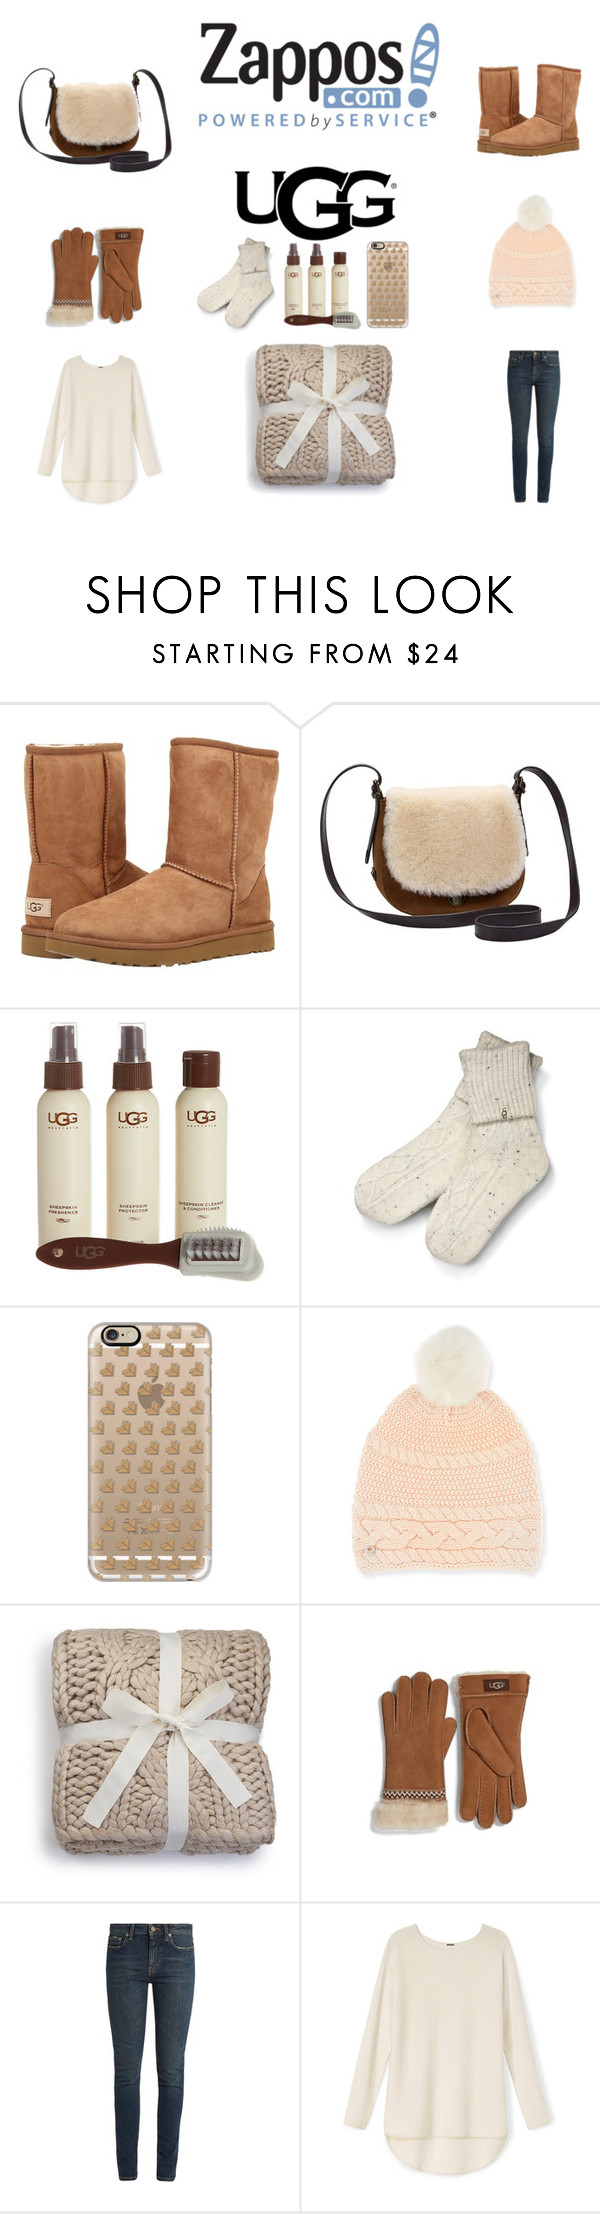 """The Icon Perfected: UGG Classic II Contest Entry"" by katelyn-style ❤ liked on Polyvore featuring UGG Australia, UGG, Casetify, Yves Saint Laurent, ugg and contestentry"